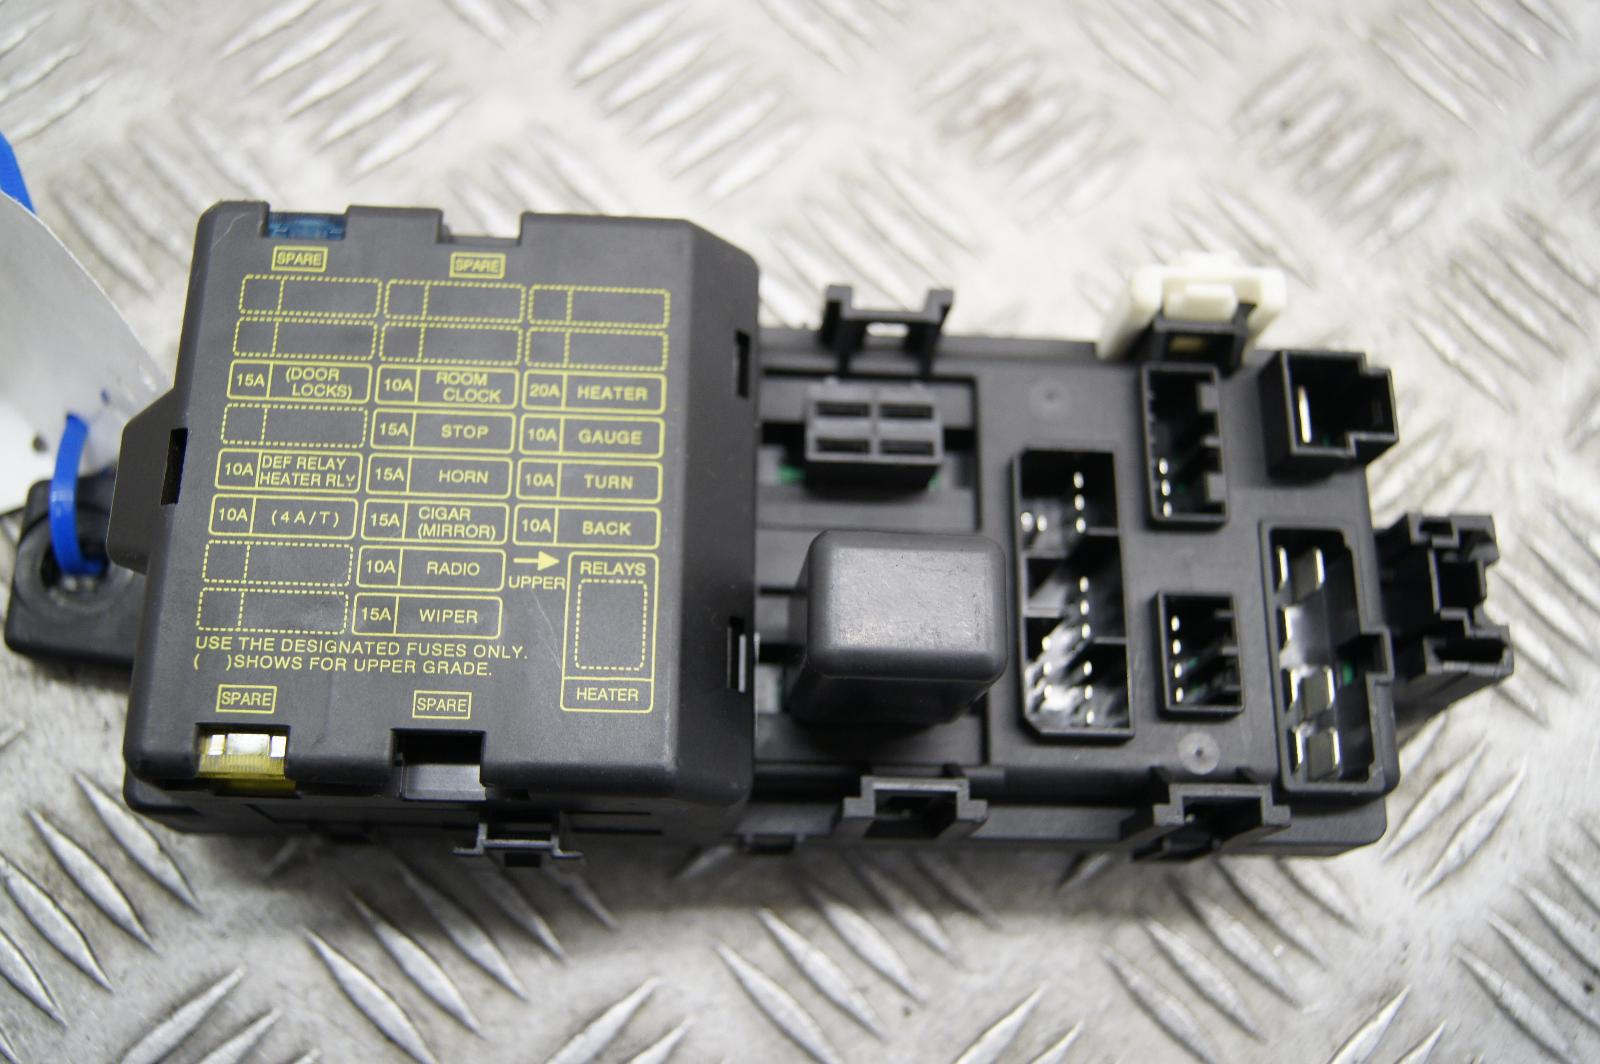 proton satria 1 5 petrol interior fuse box part number 02076m ak 145636 145634